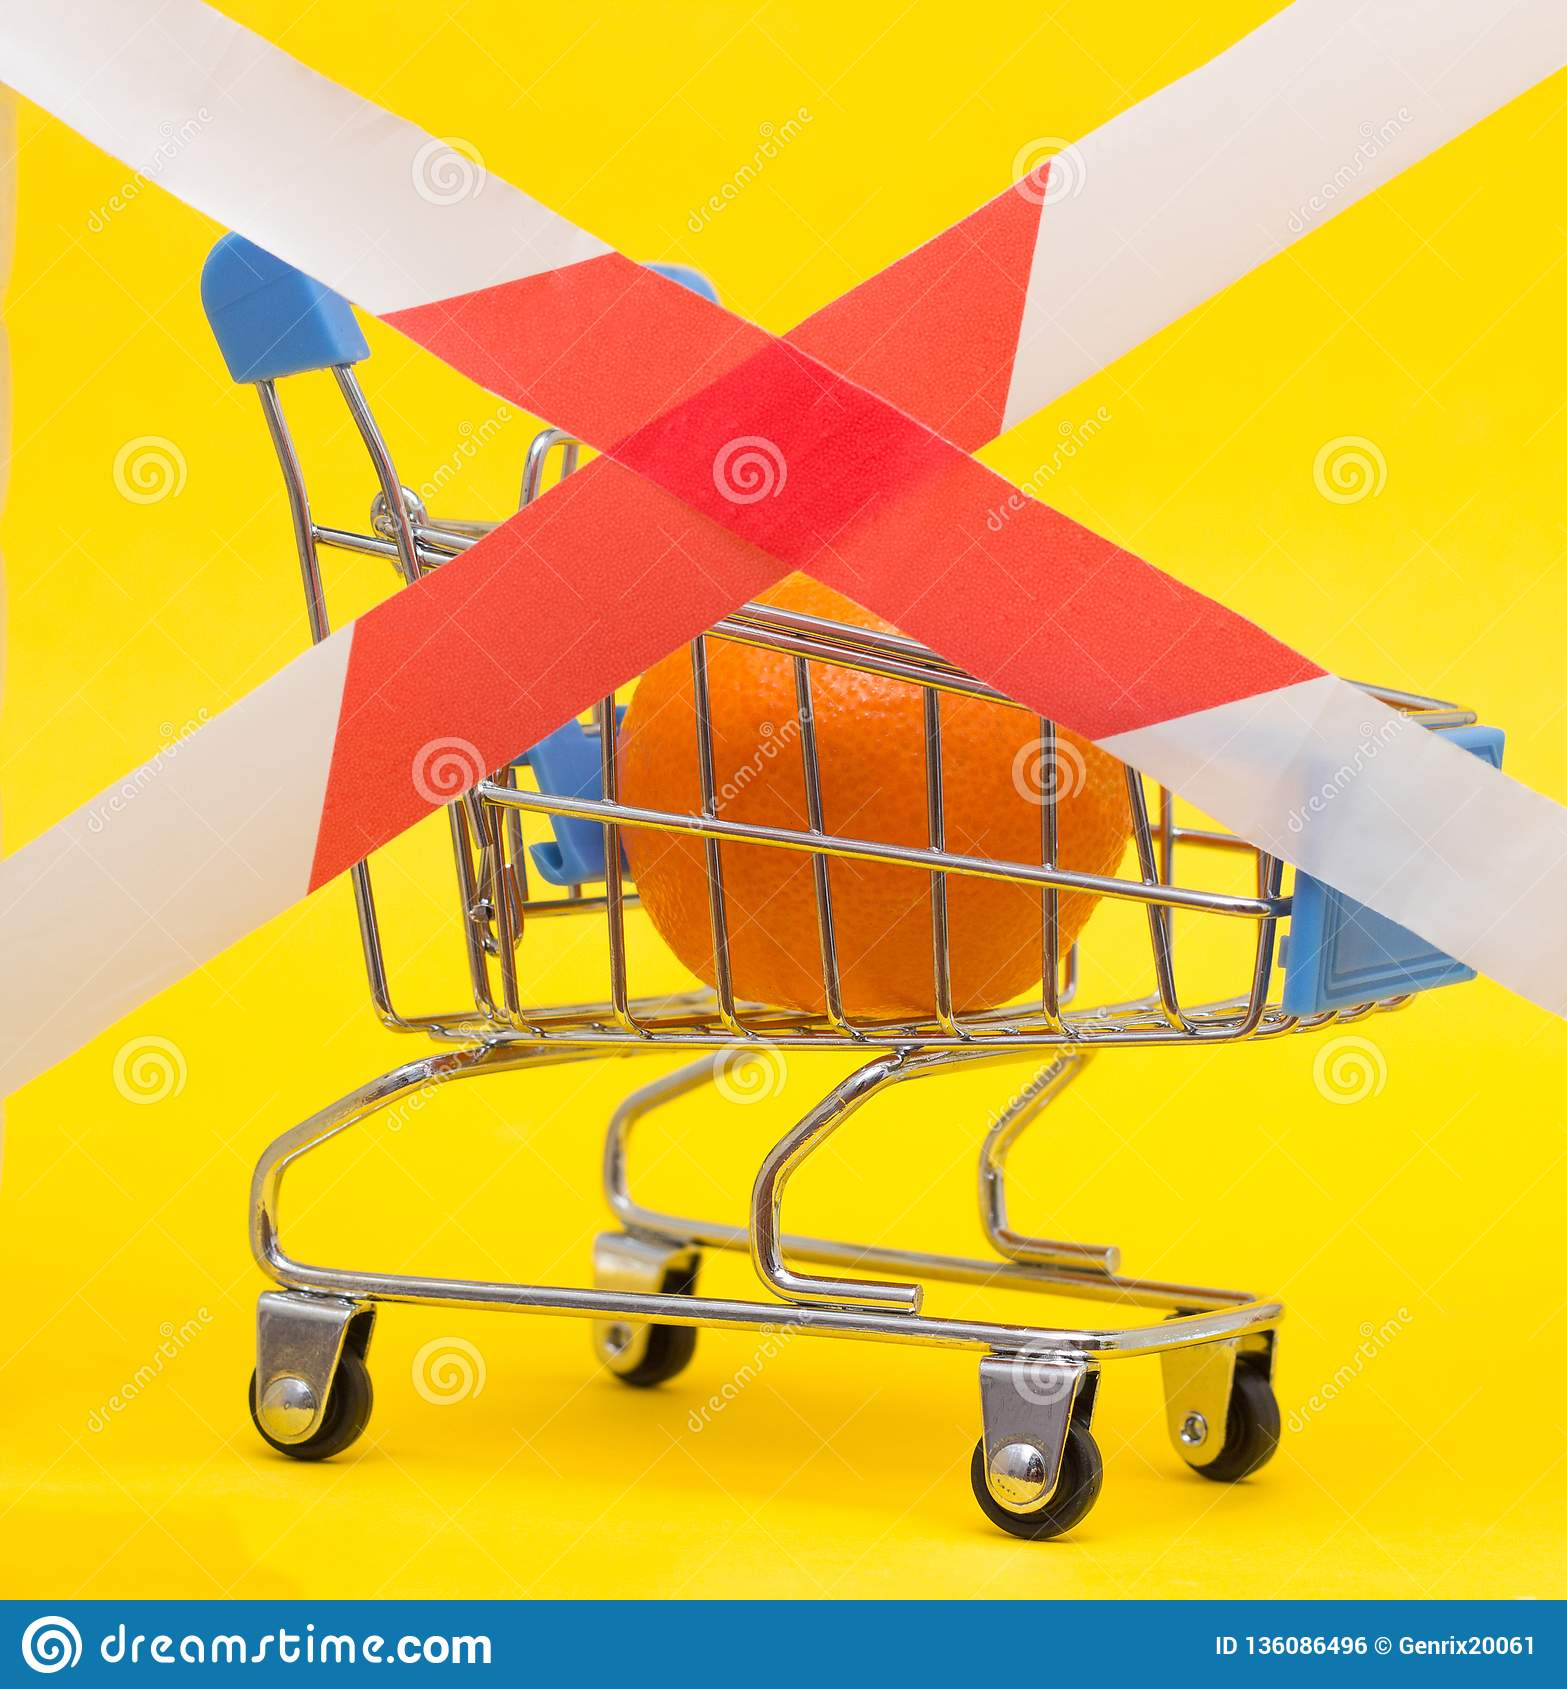 Shopping cart in which the mandarin is fenced with a banned tape, sanctions on products, prohibition, close-up